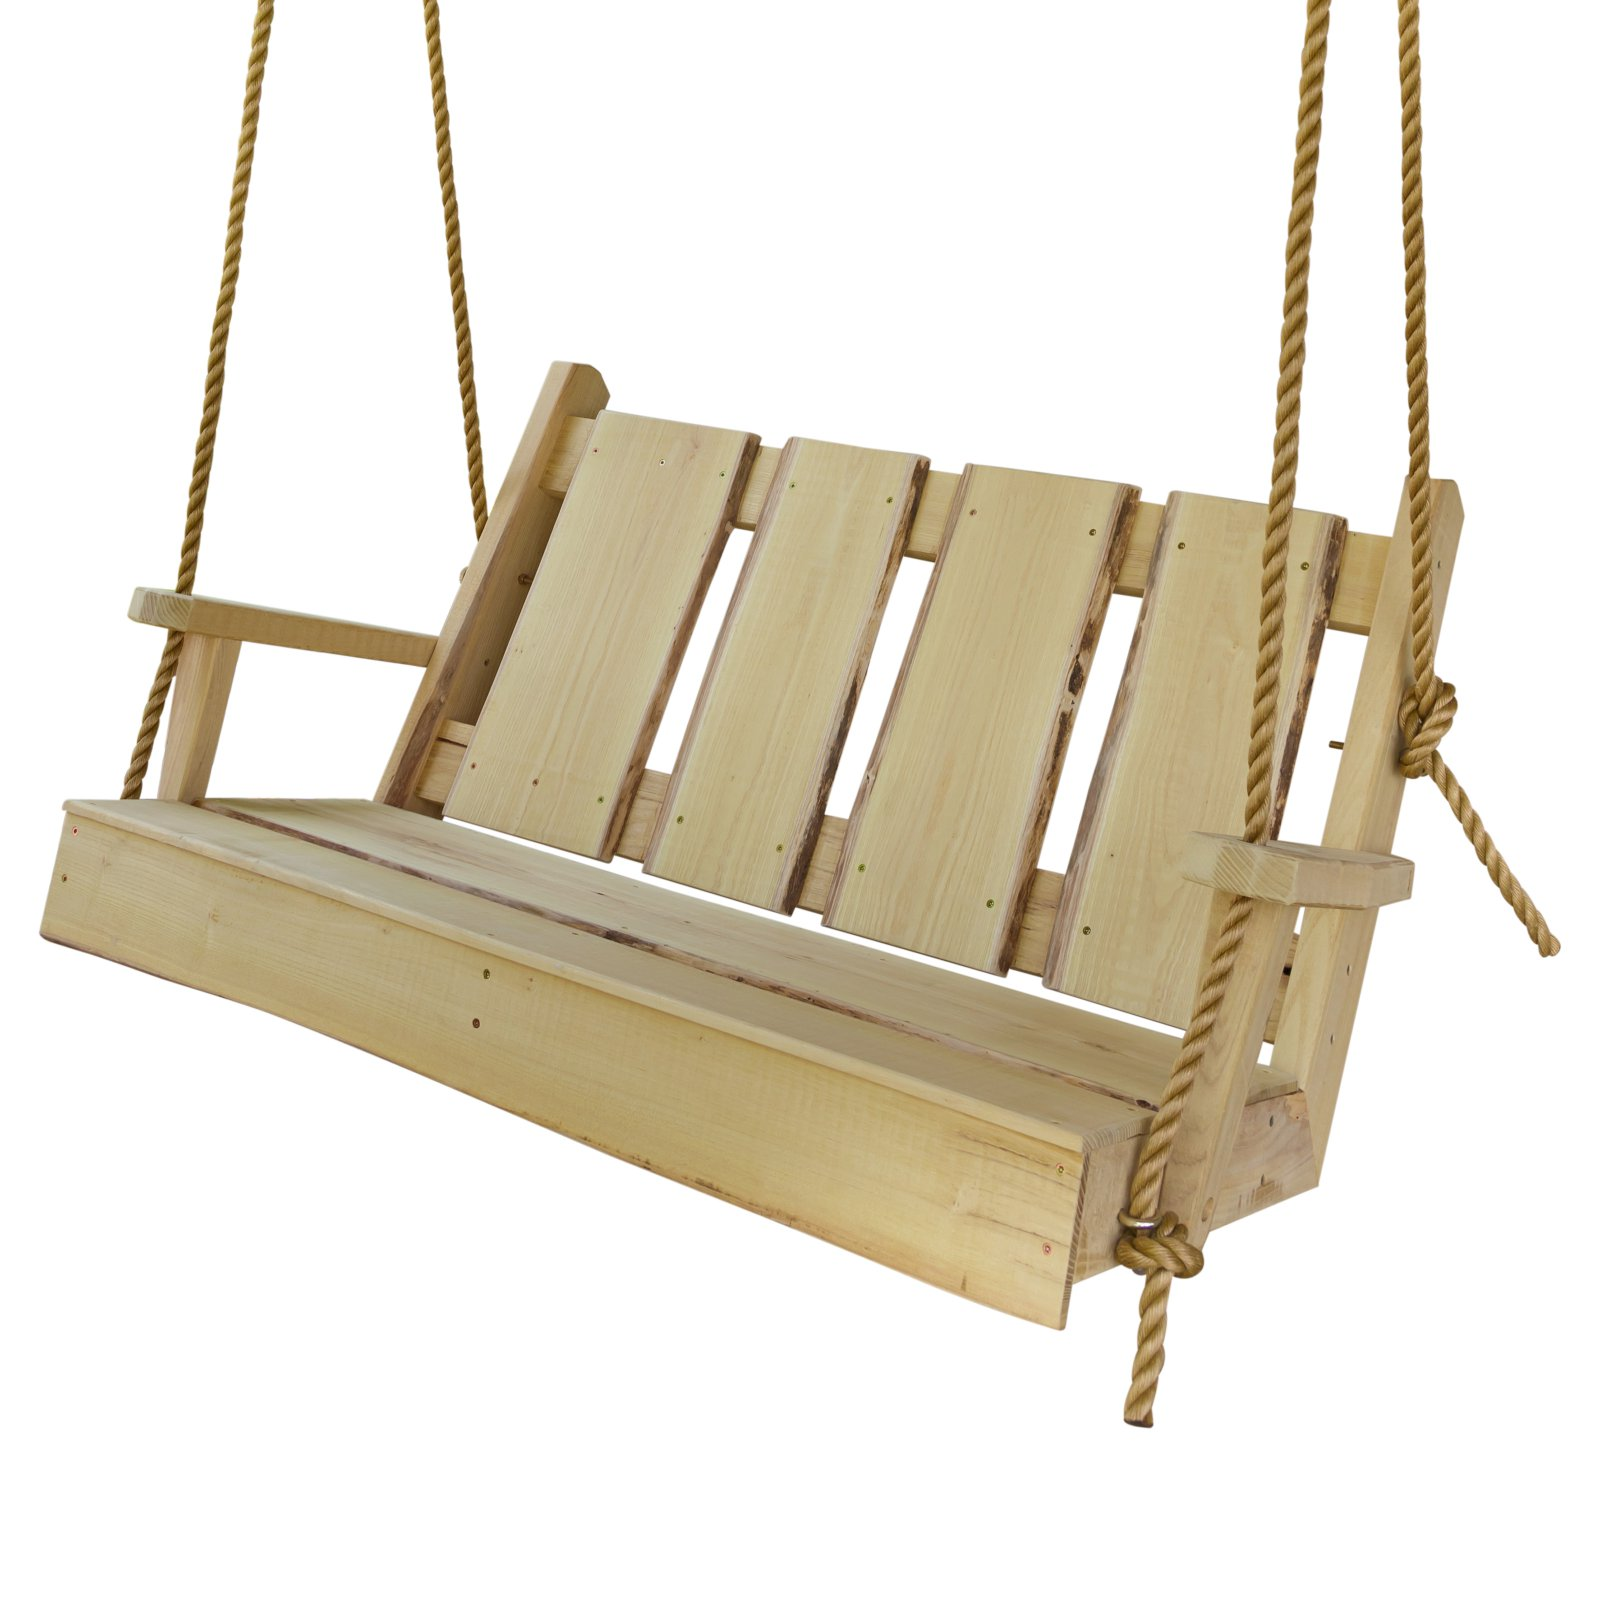 A & L Furniture Timberland 52 in. Wood Porch Swing